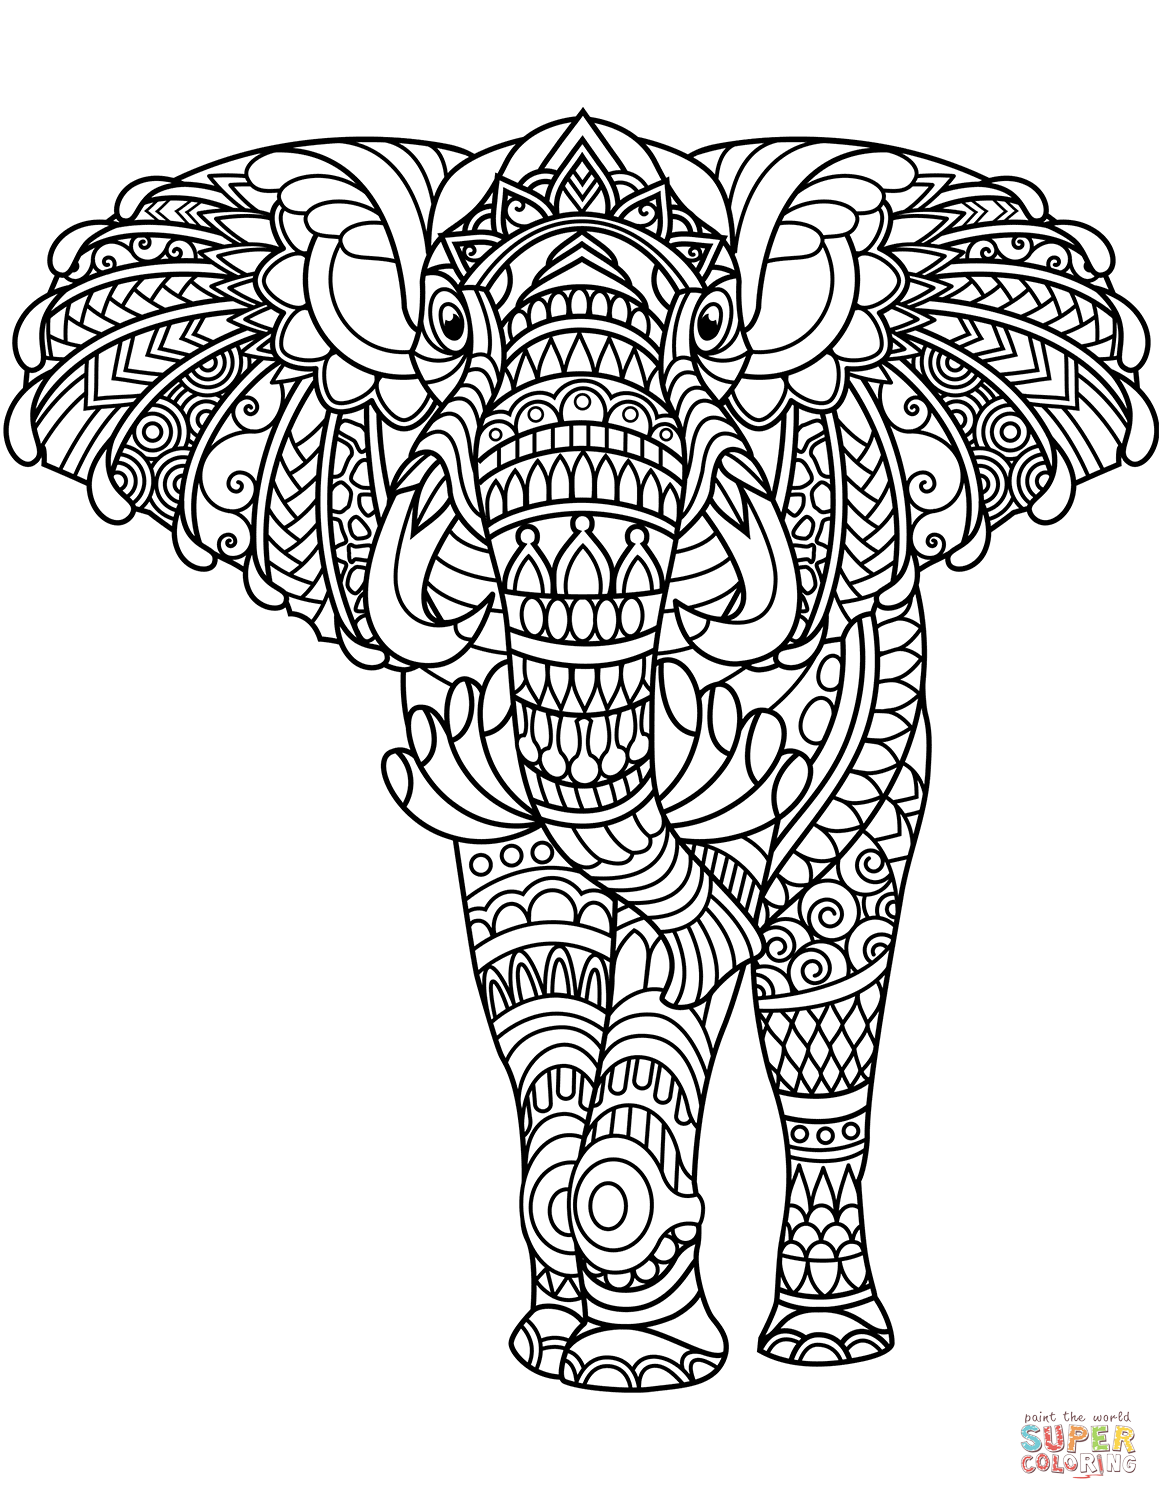 coloring pages zentangle zentangle to color for kids zentangle kids coloring pages zentangle pages coloring